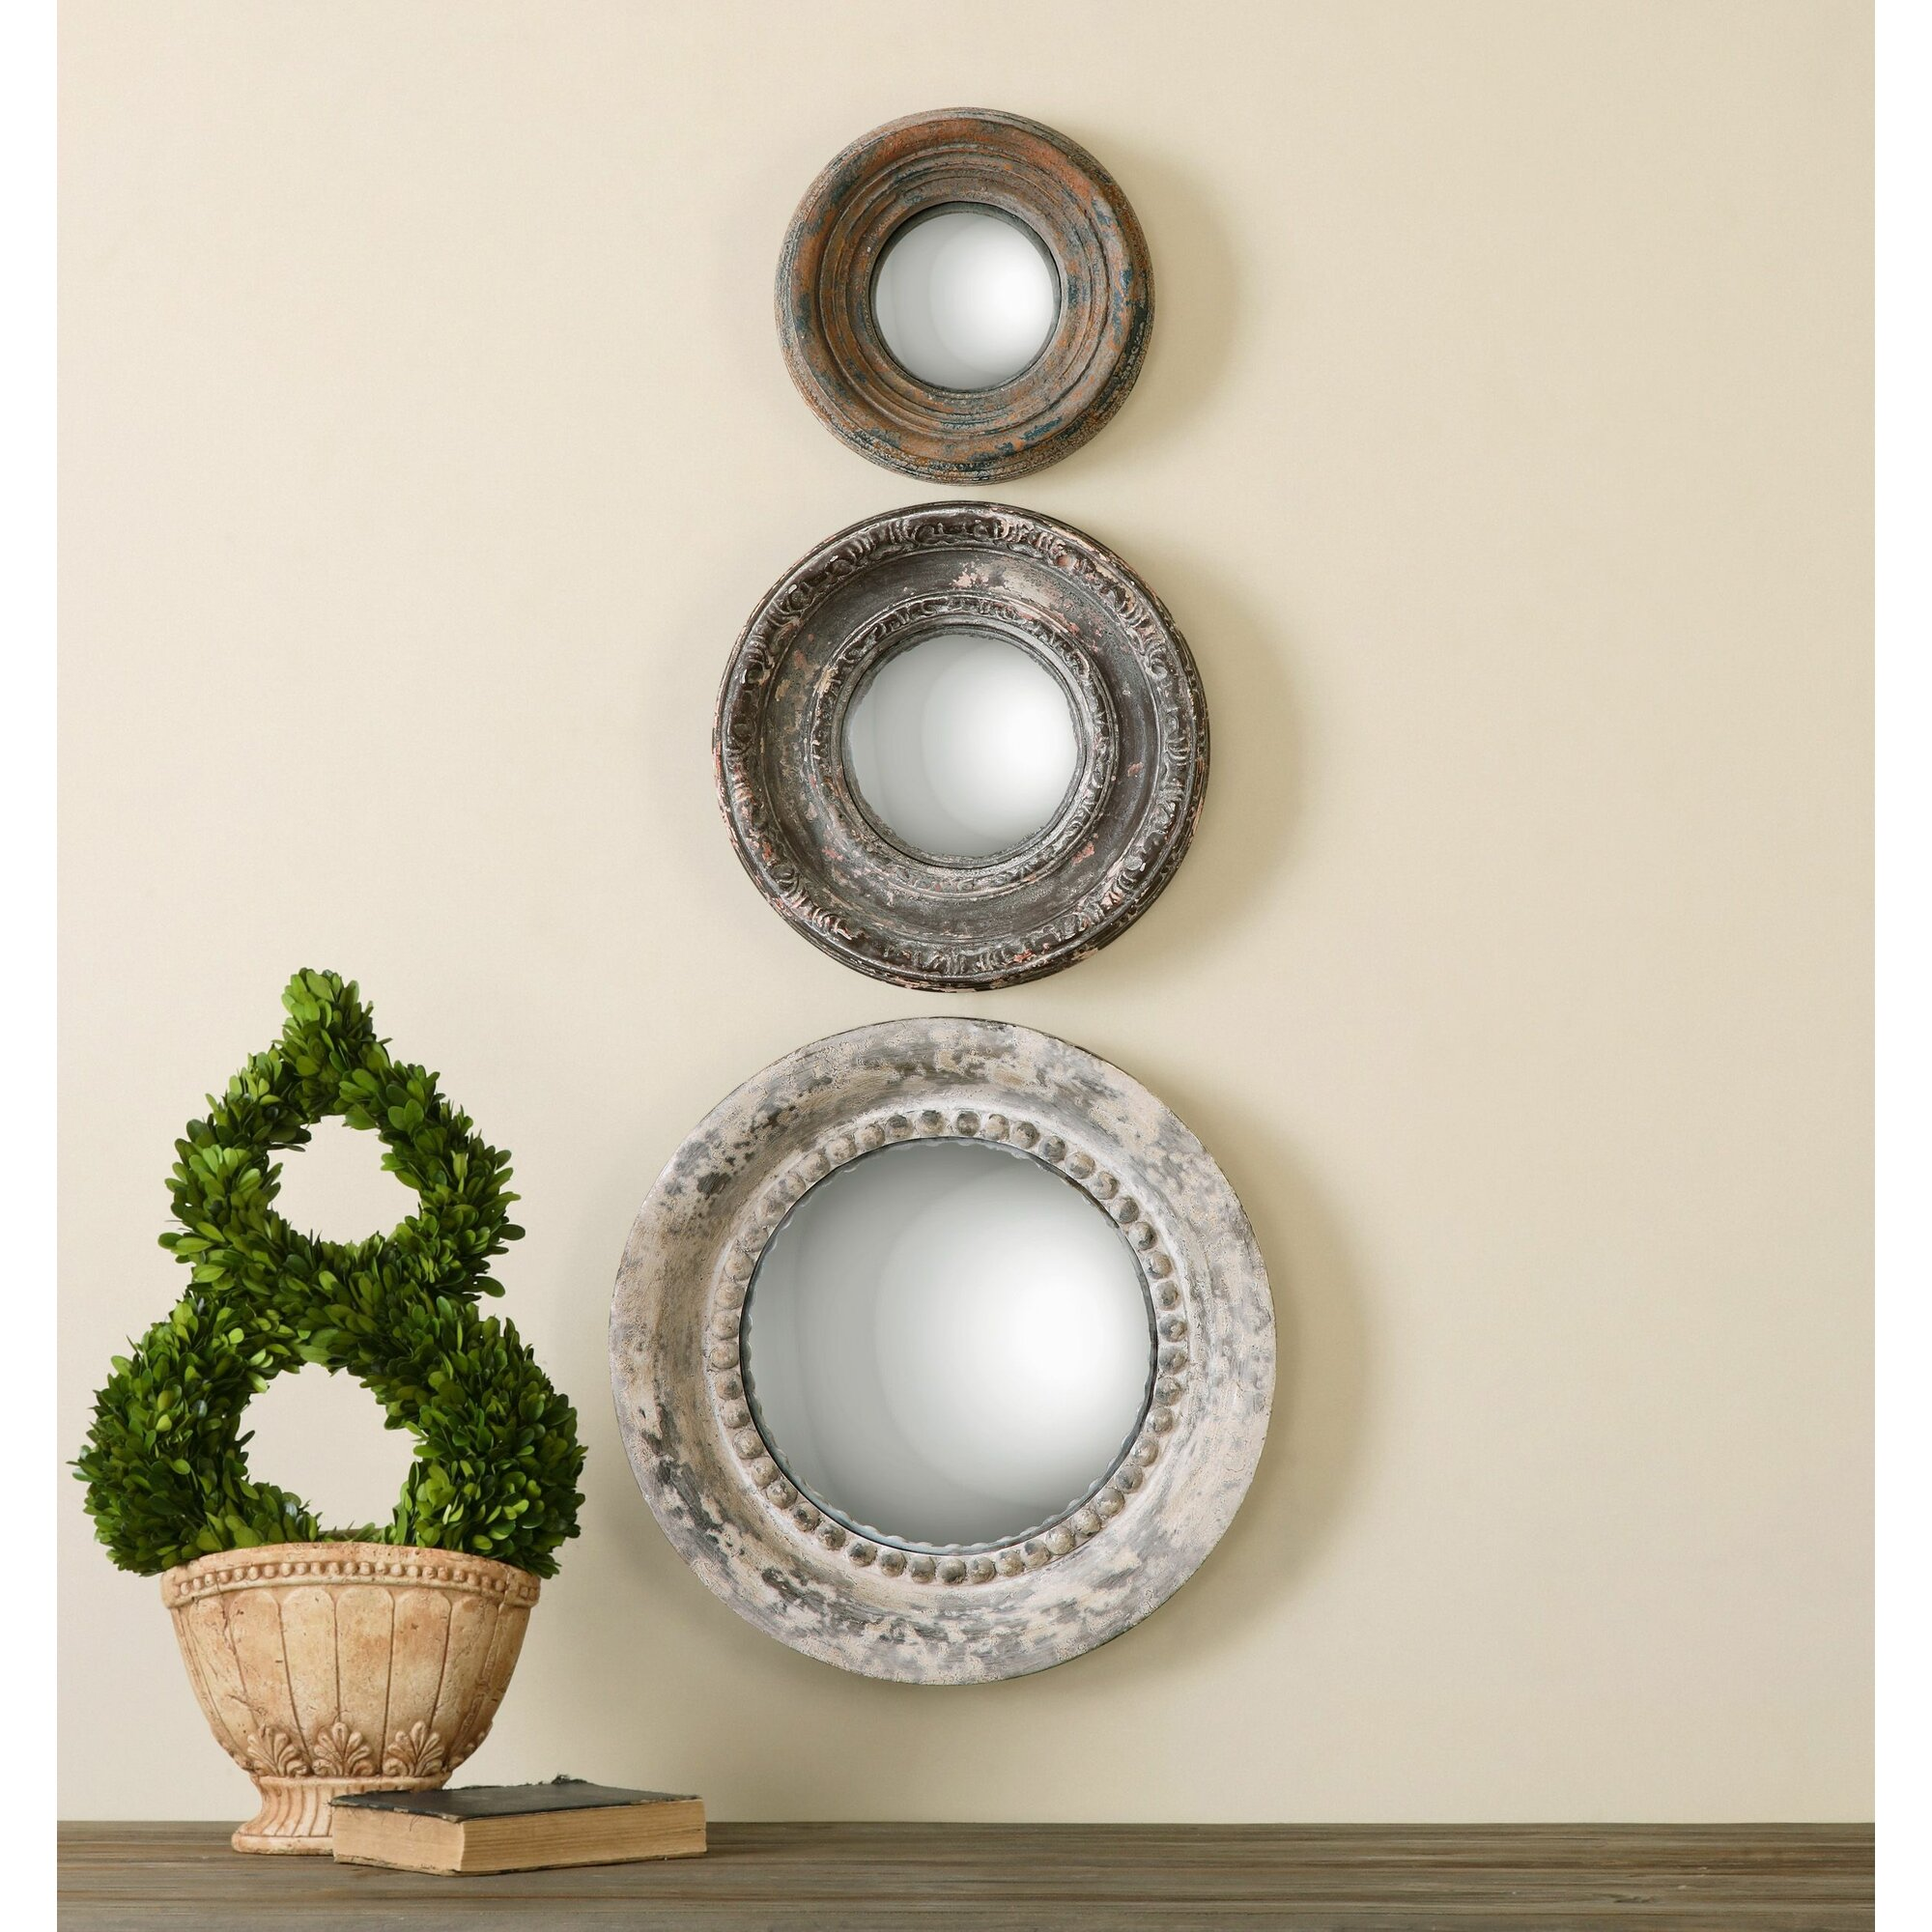 3 piece alona round large wall mirror set reviews joss main. Black Bedroom Furniture Sets. Home Design Ideas